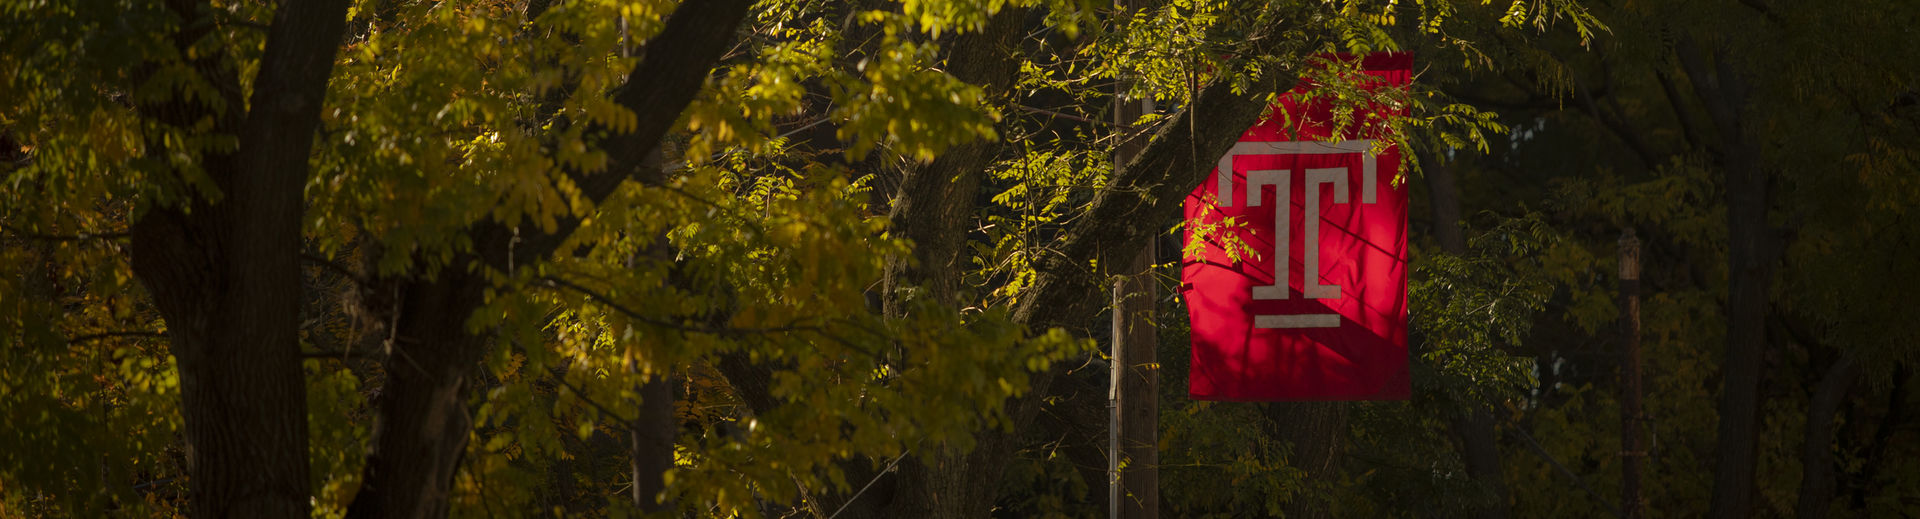 Temple T flag on campus